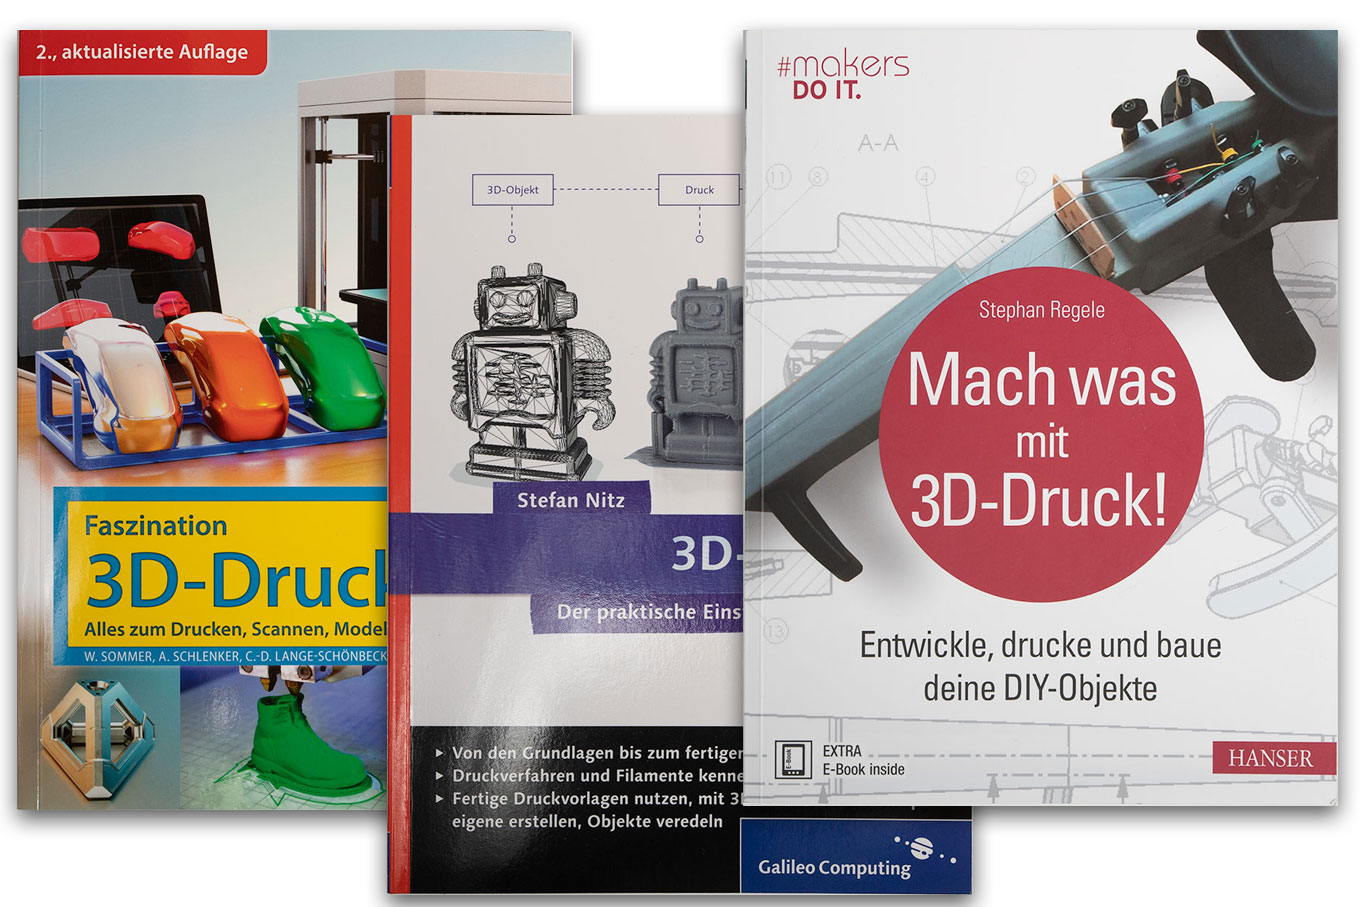 3D-Druck-Buchempfehlung.jpg